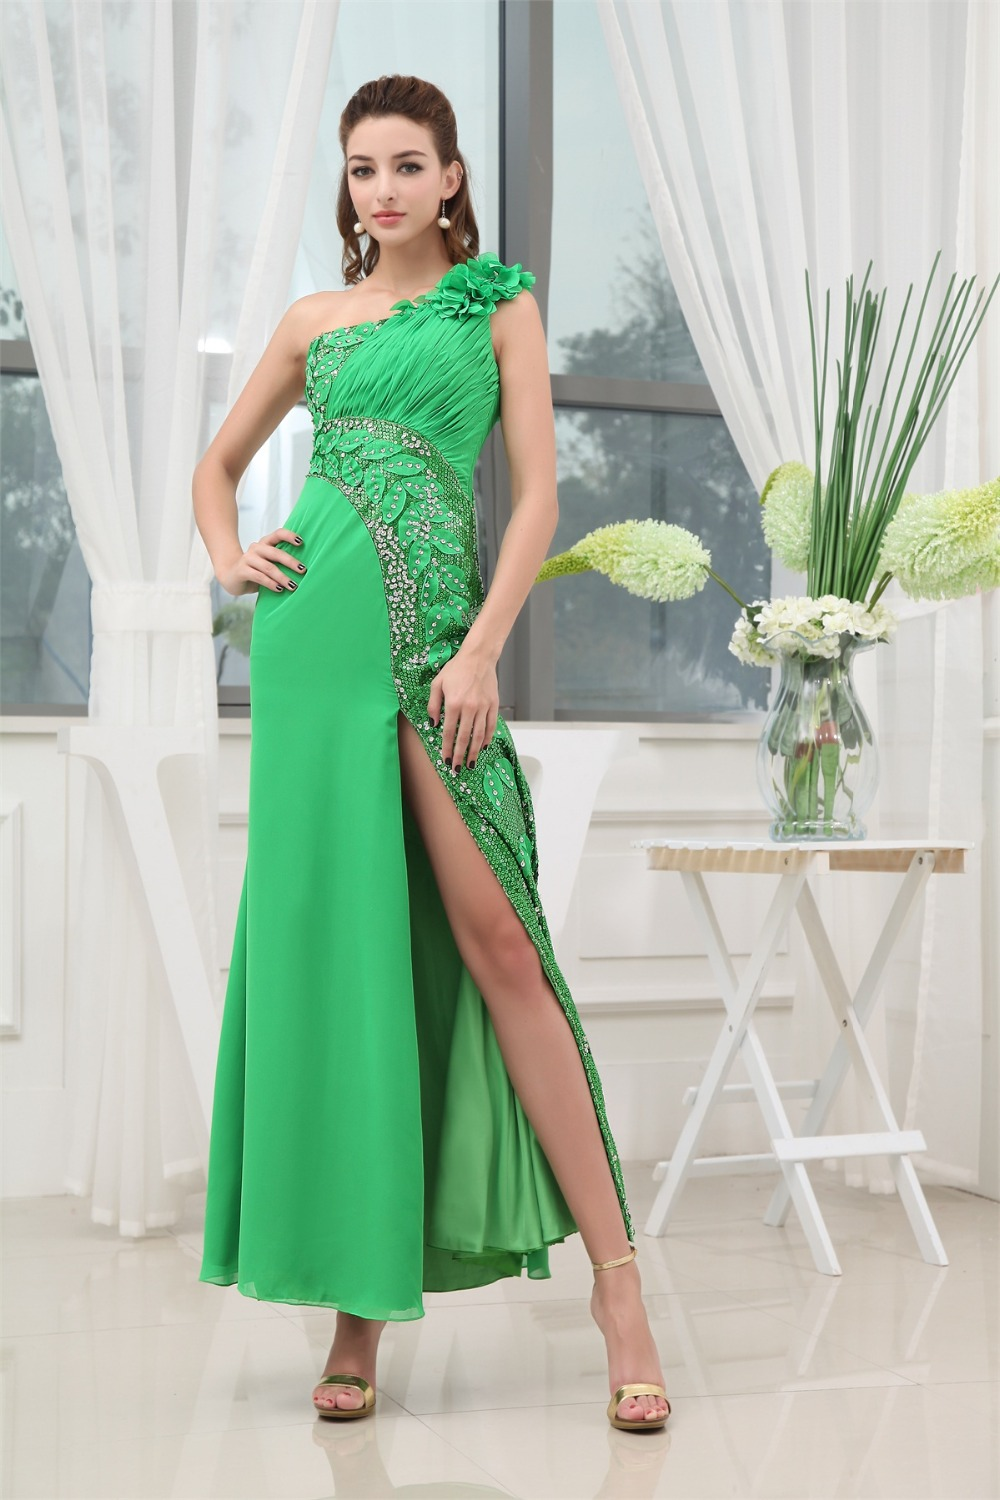 Spring green bridesmaid dresses dress images spring green bridesmaid dresses ombrellifo Image collections